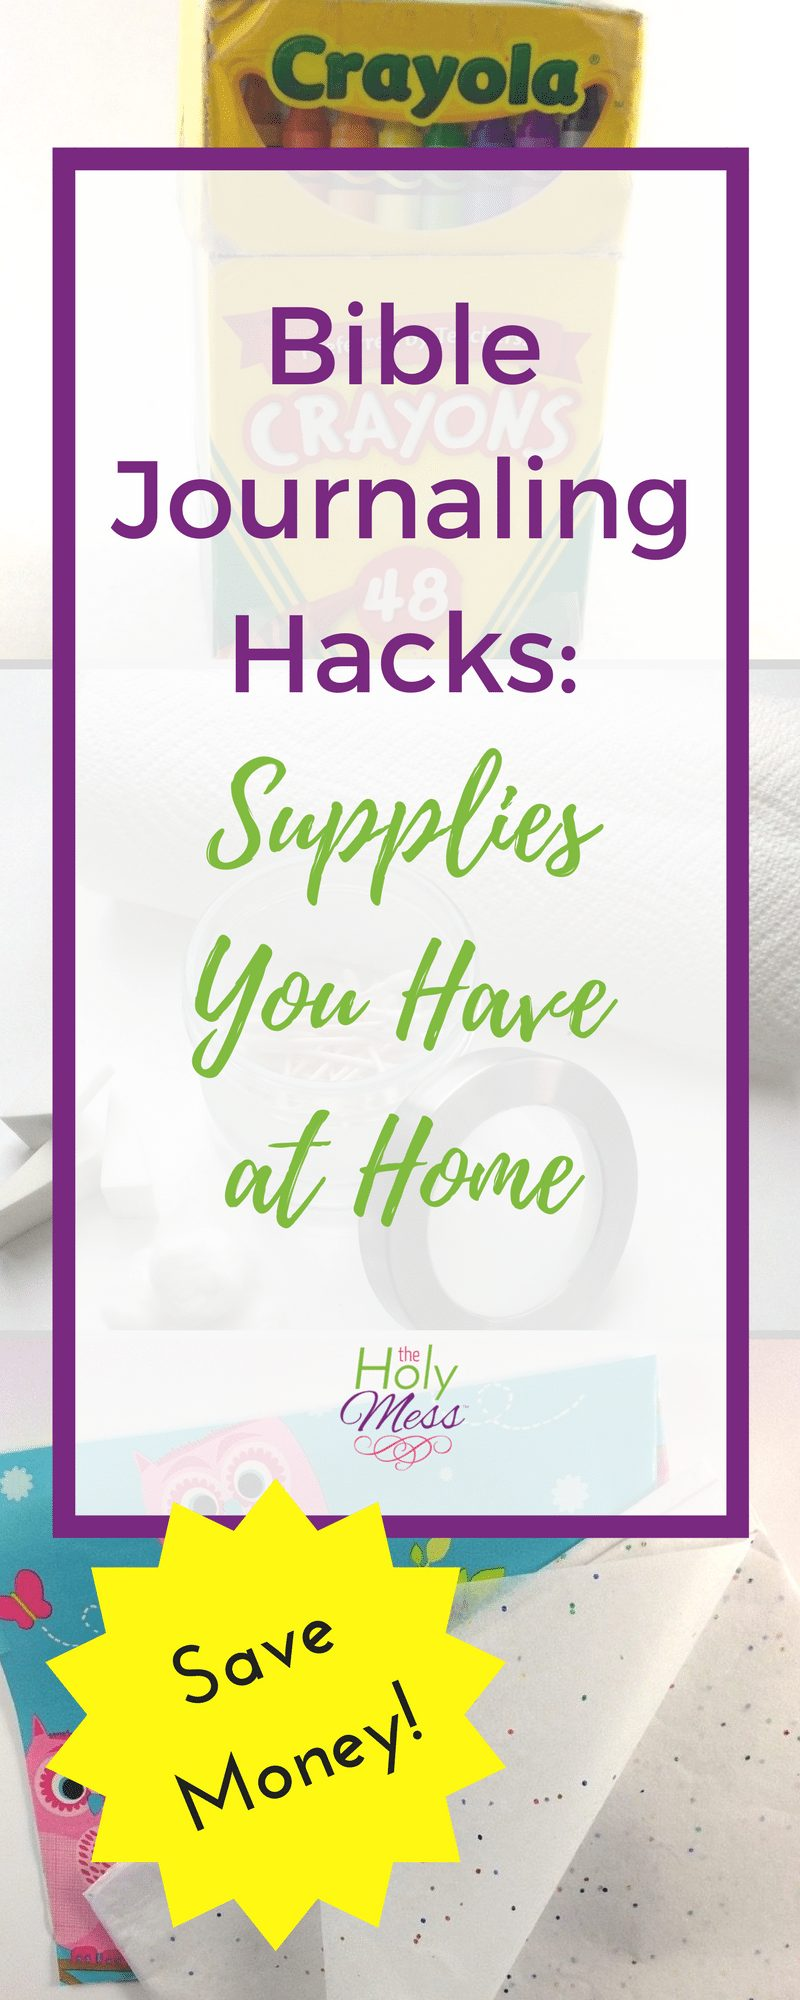 Bible Journaling Hacks: Supplies You Have at Home #biblejournaling #journaling #supplies #hacks